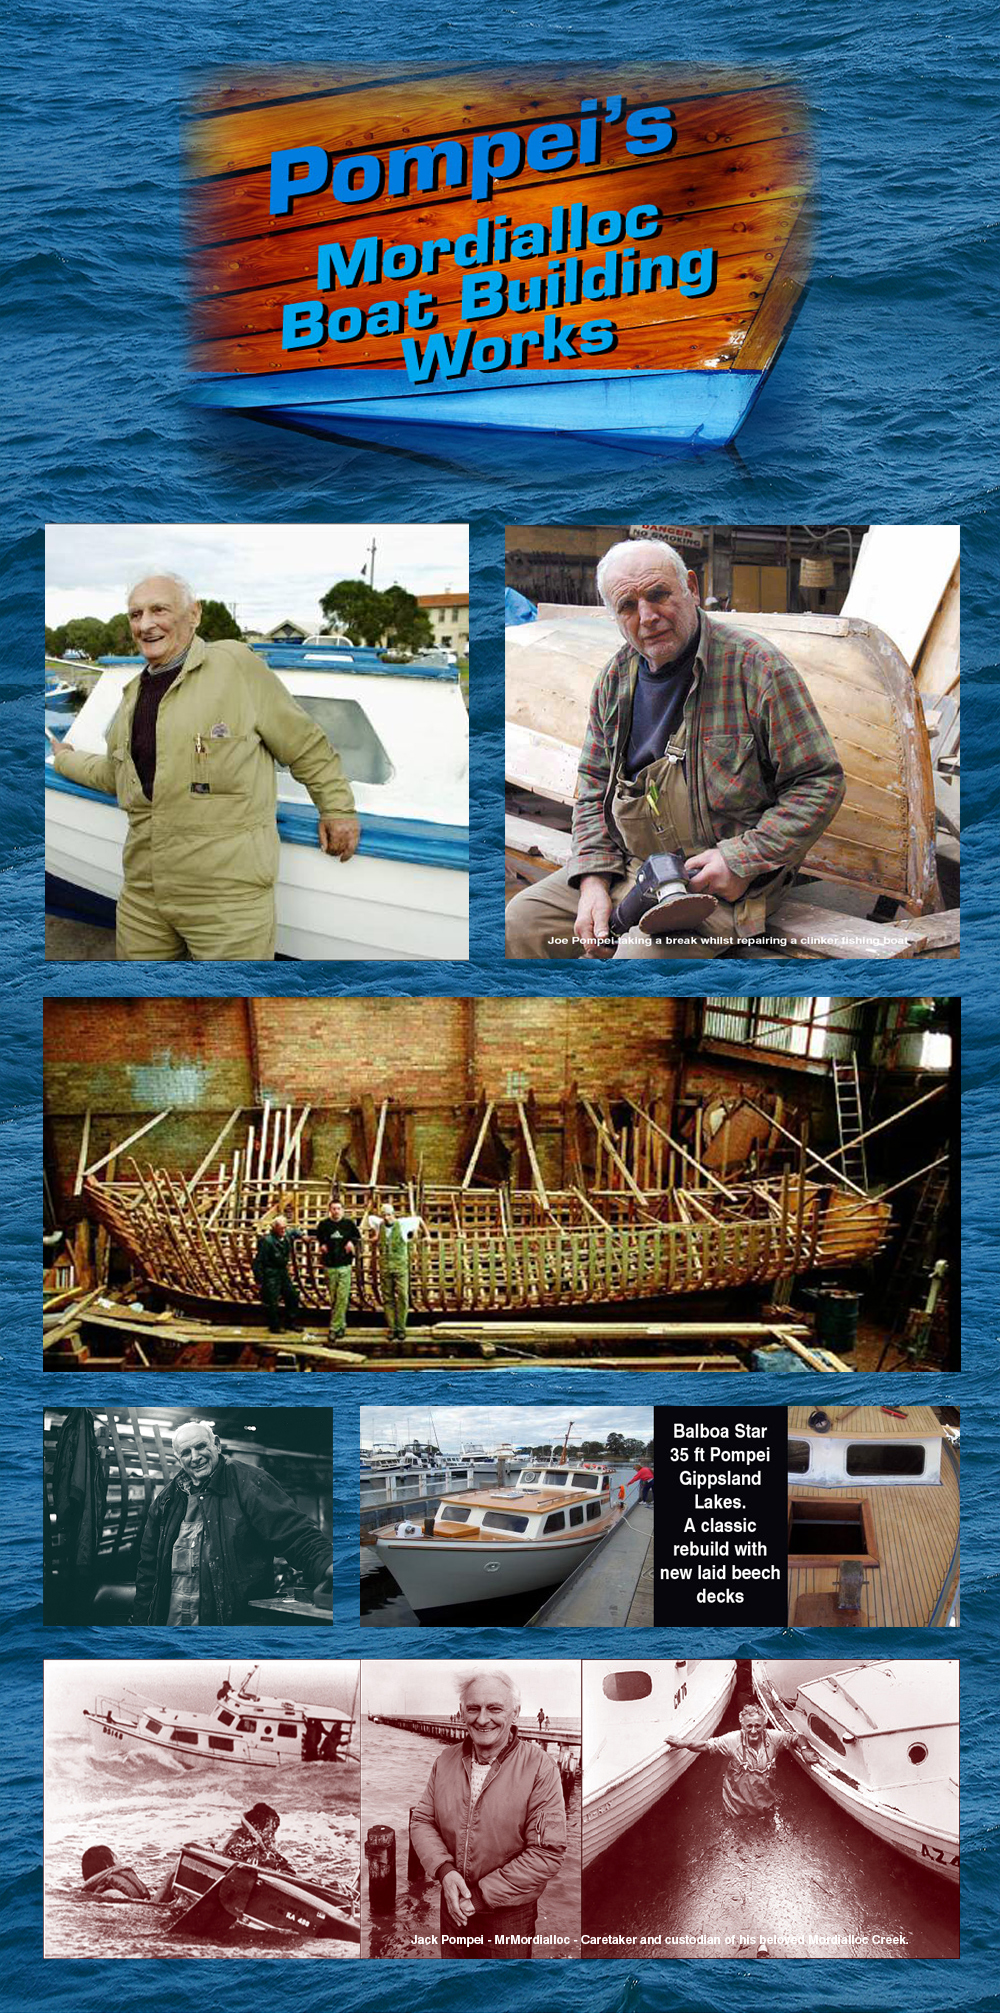 Pompei Boatbuilders a Mordialloc and Australian Wooden Boat Building institution.